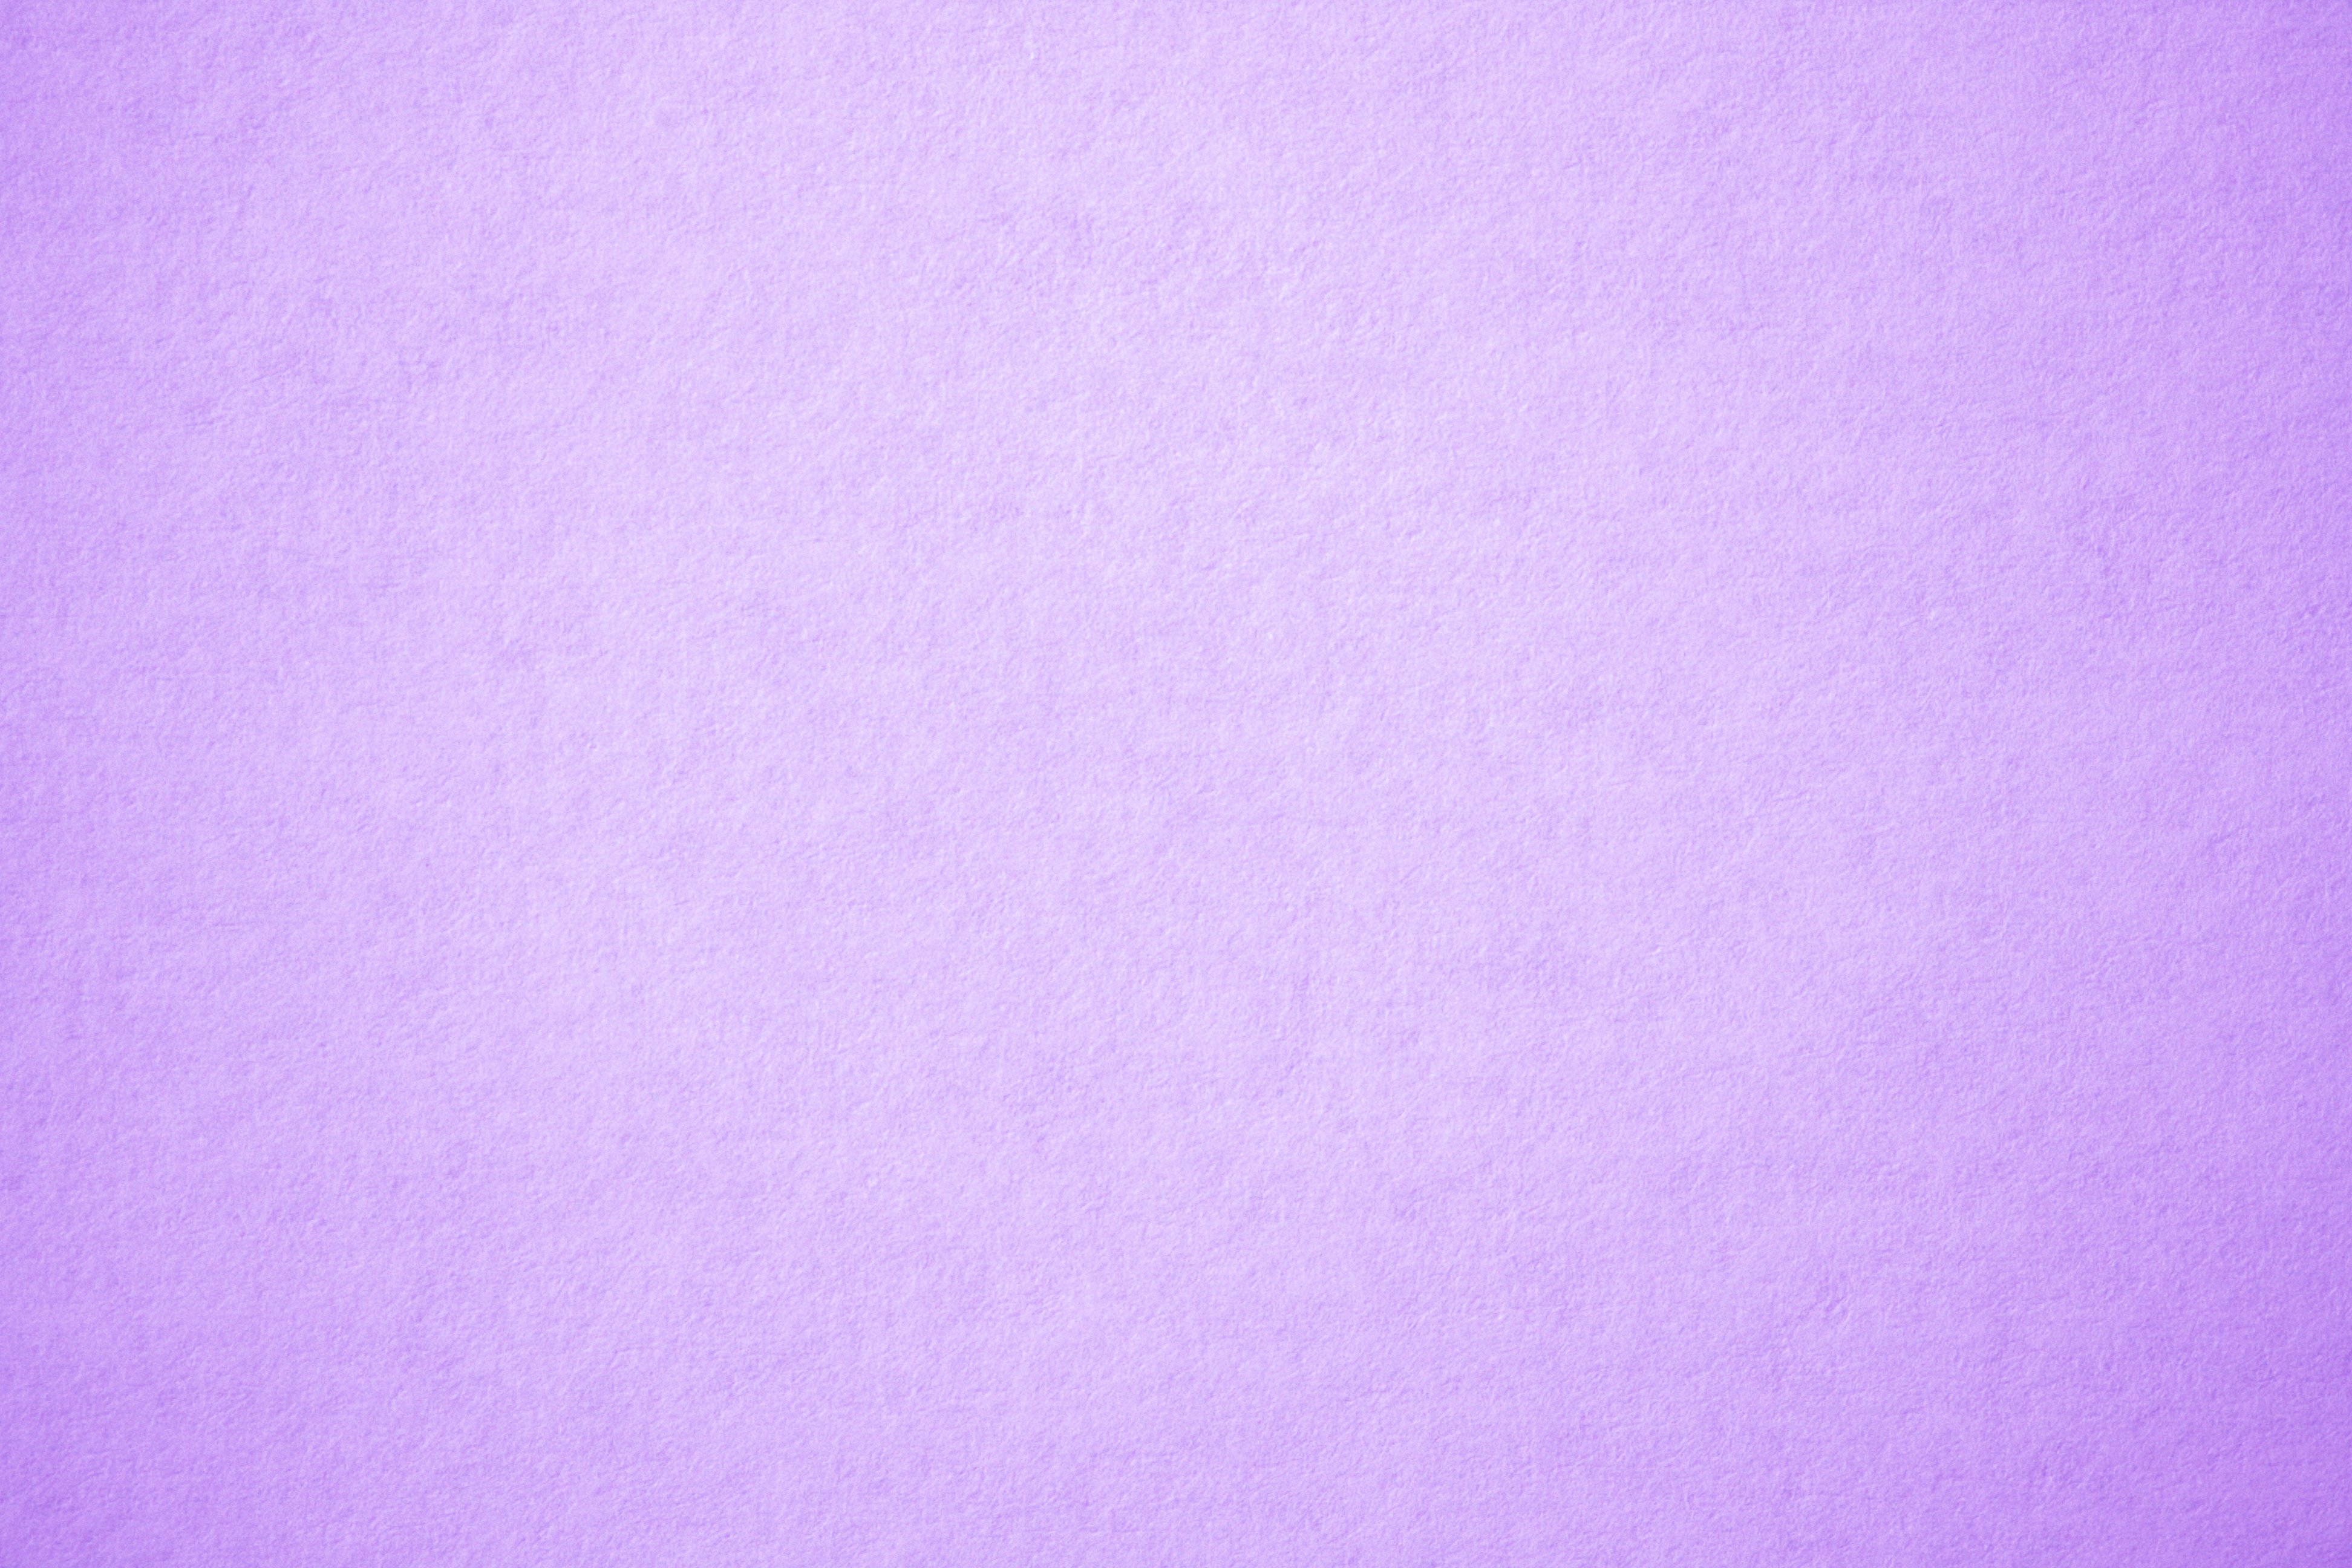 Lavender Paper Texture   High Resolution Photo   Dimensions 3888 3888x2592